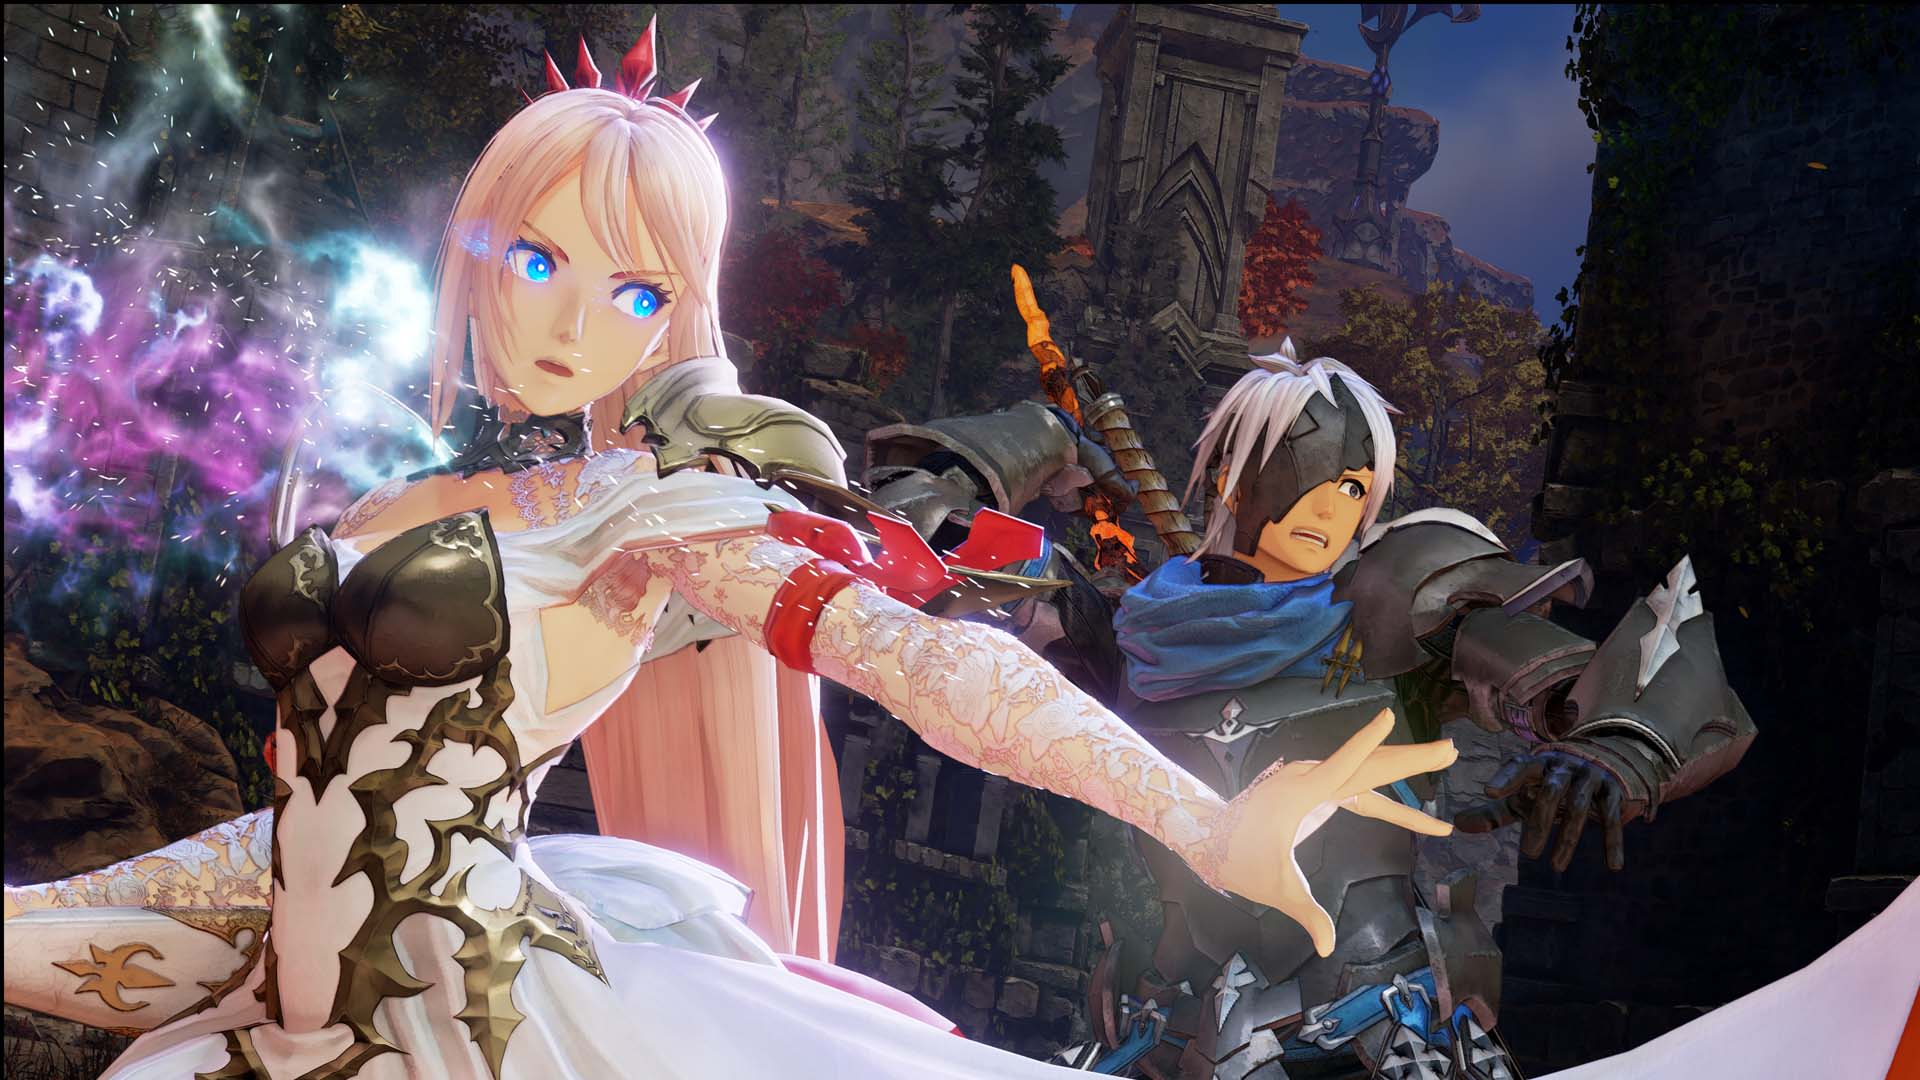 Tales of Arise: Without any form of censorship - statement on the rumors